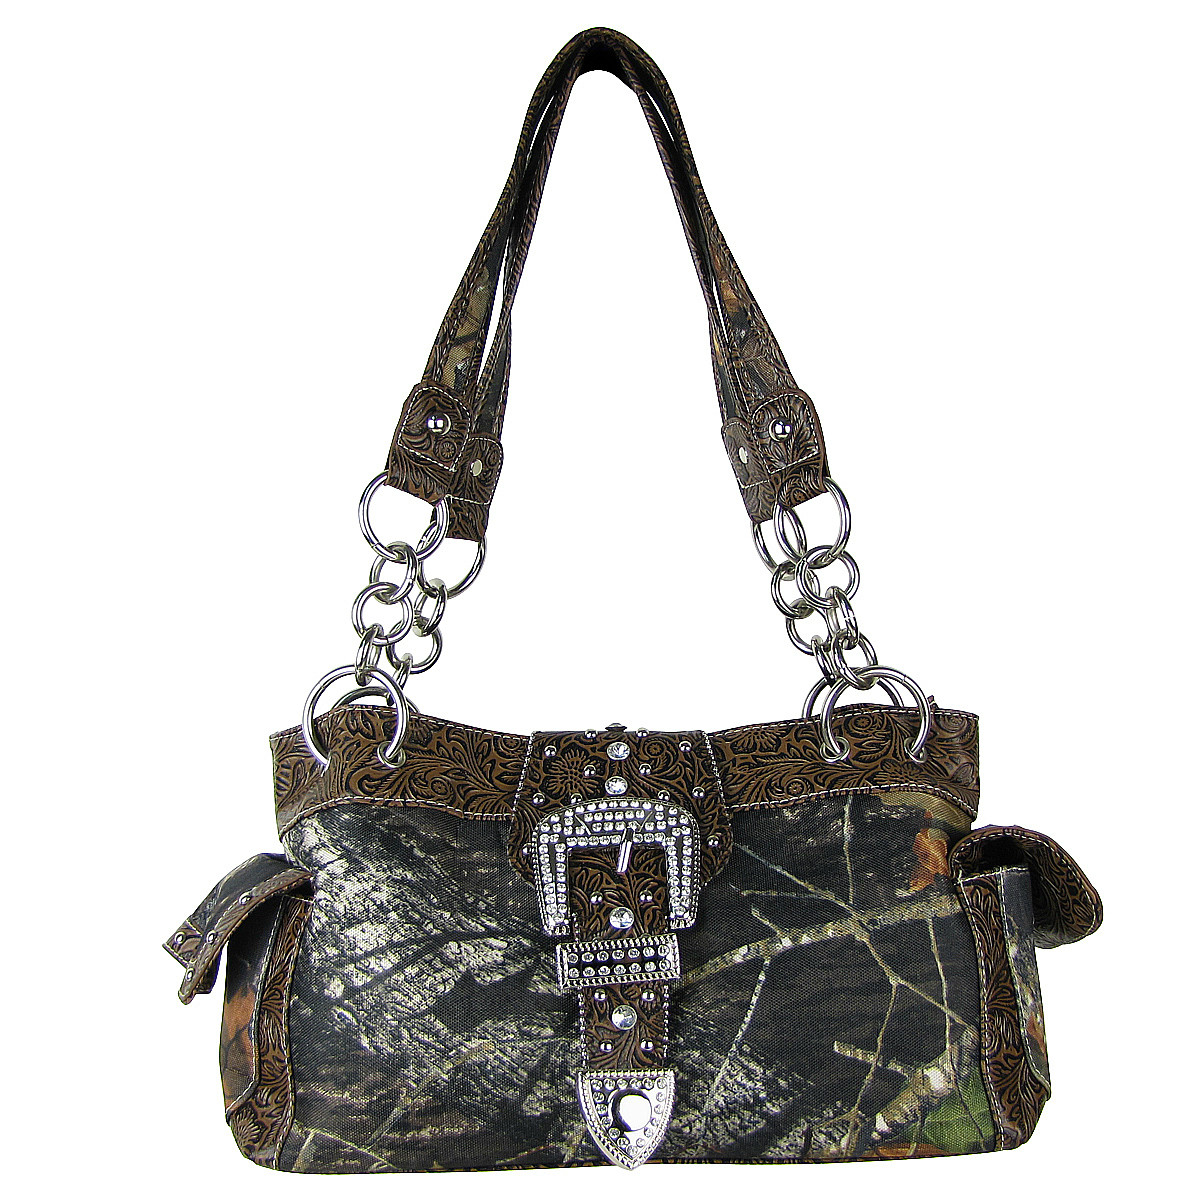 BROWN MOSSY CAMO RHINESTONE BUCKLE SHOULDER HANDBAG HB1-C154BRN